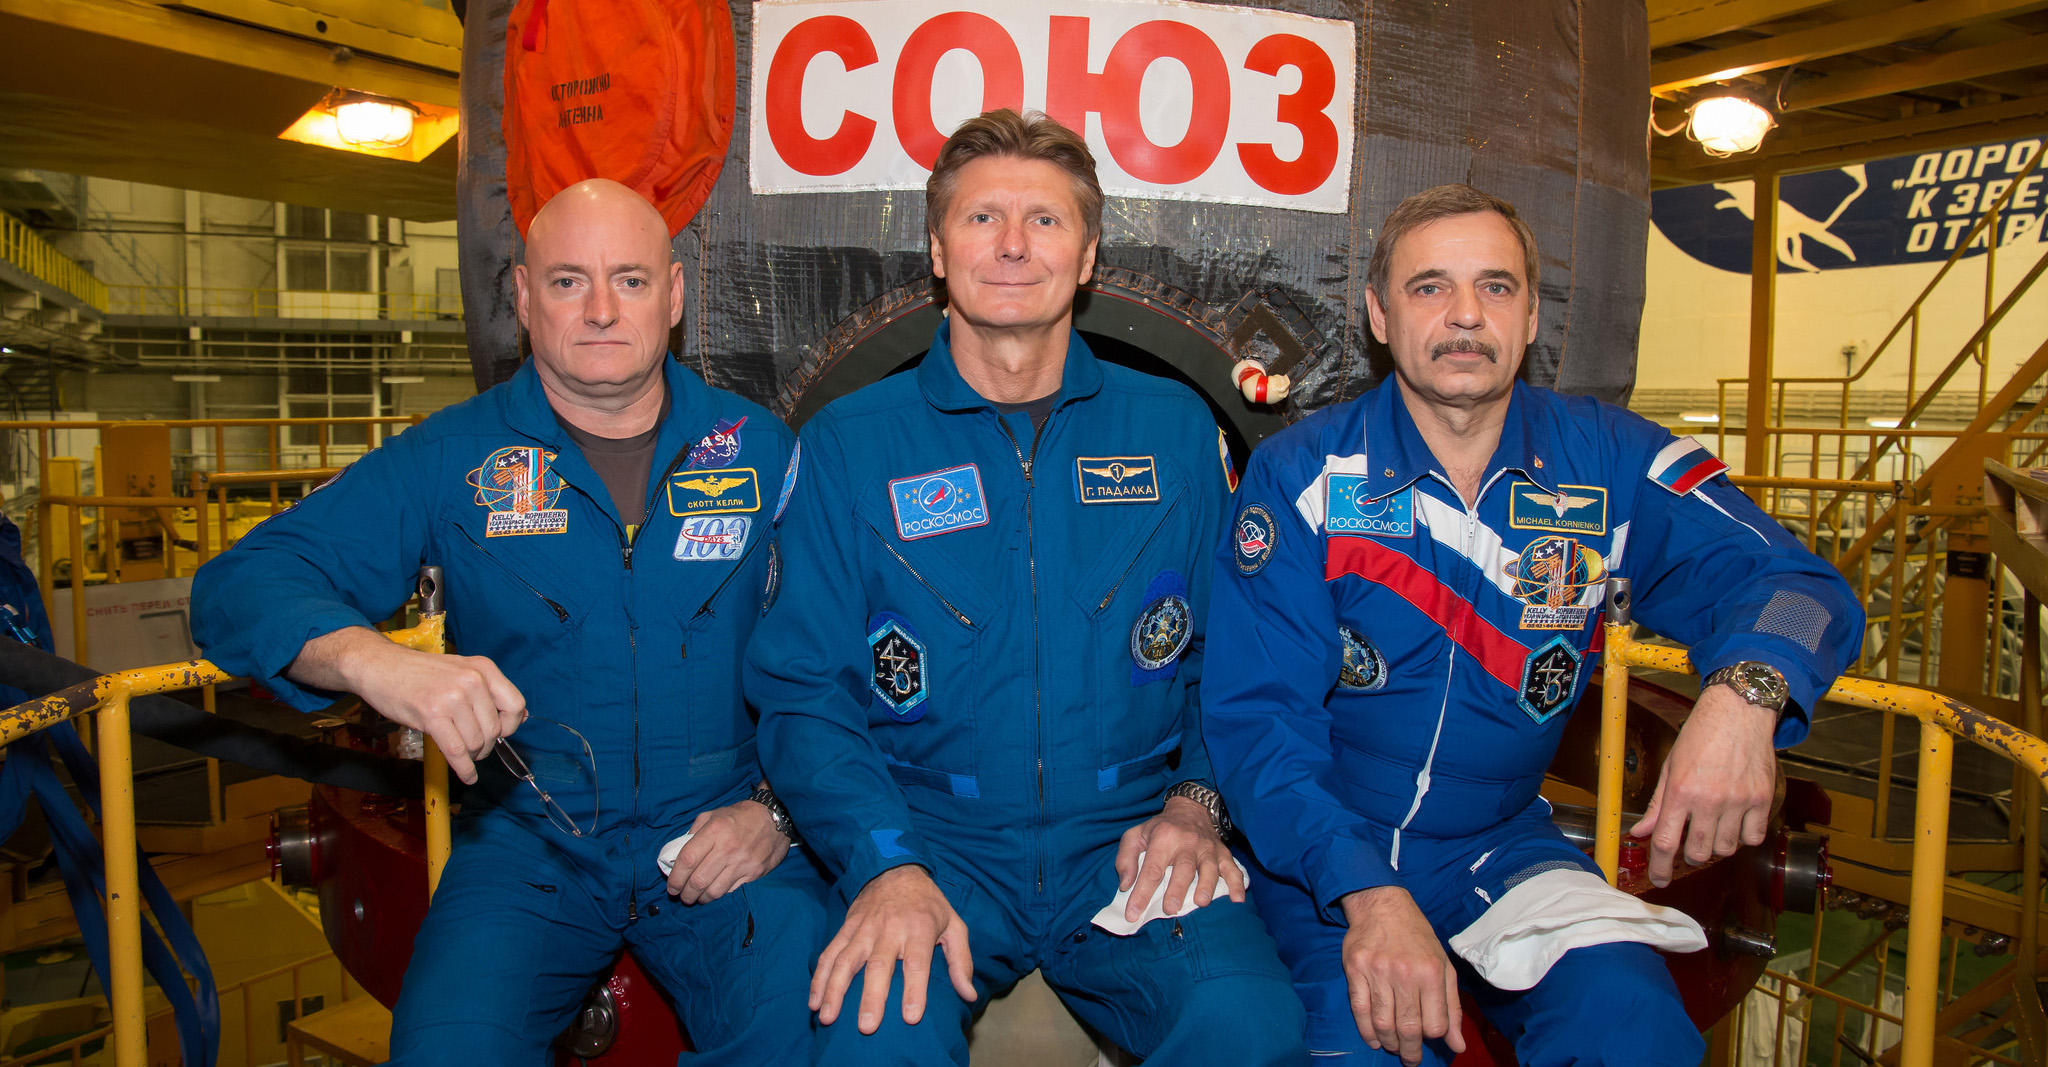 Expedition 43 astronauts